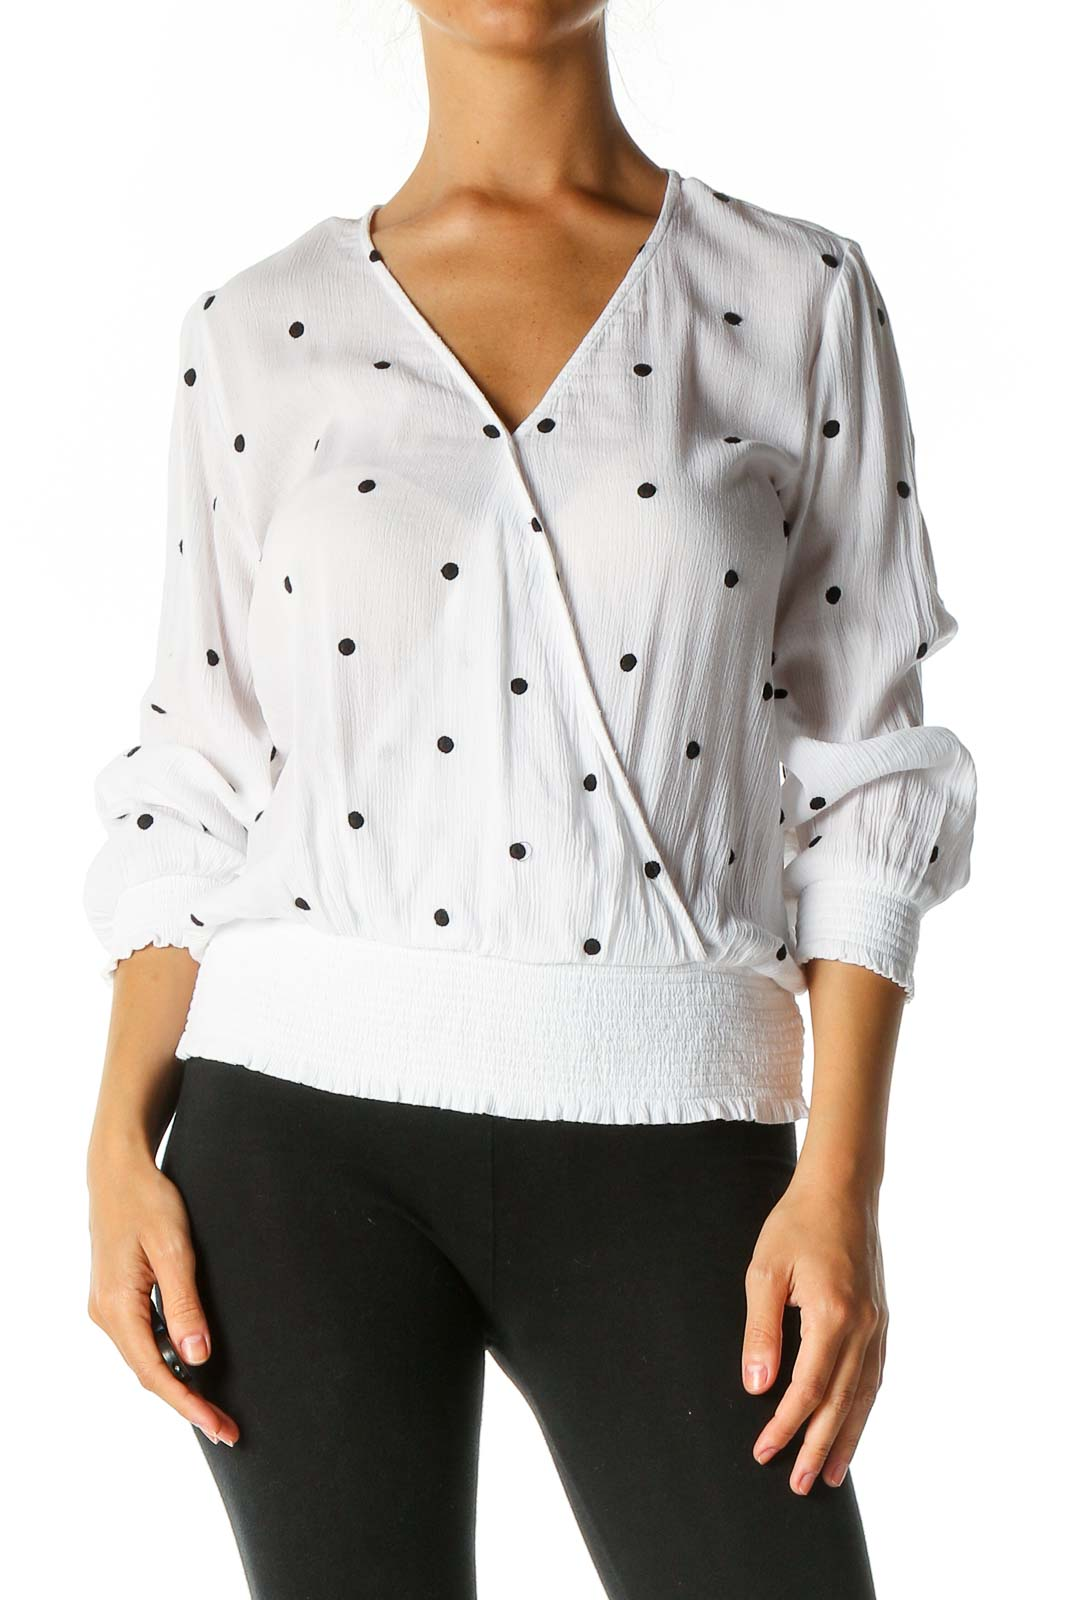 White Polka Dot Brunch Blouse Front